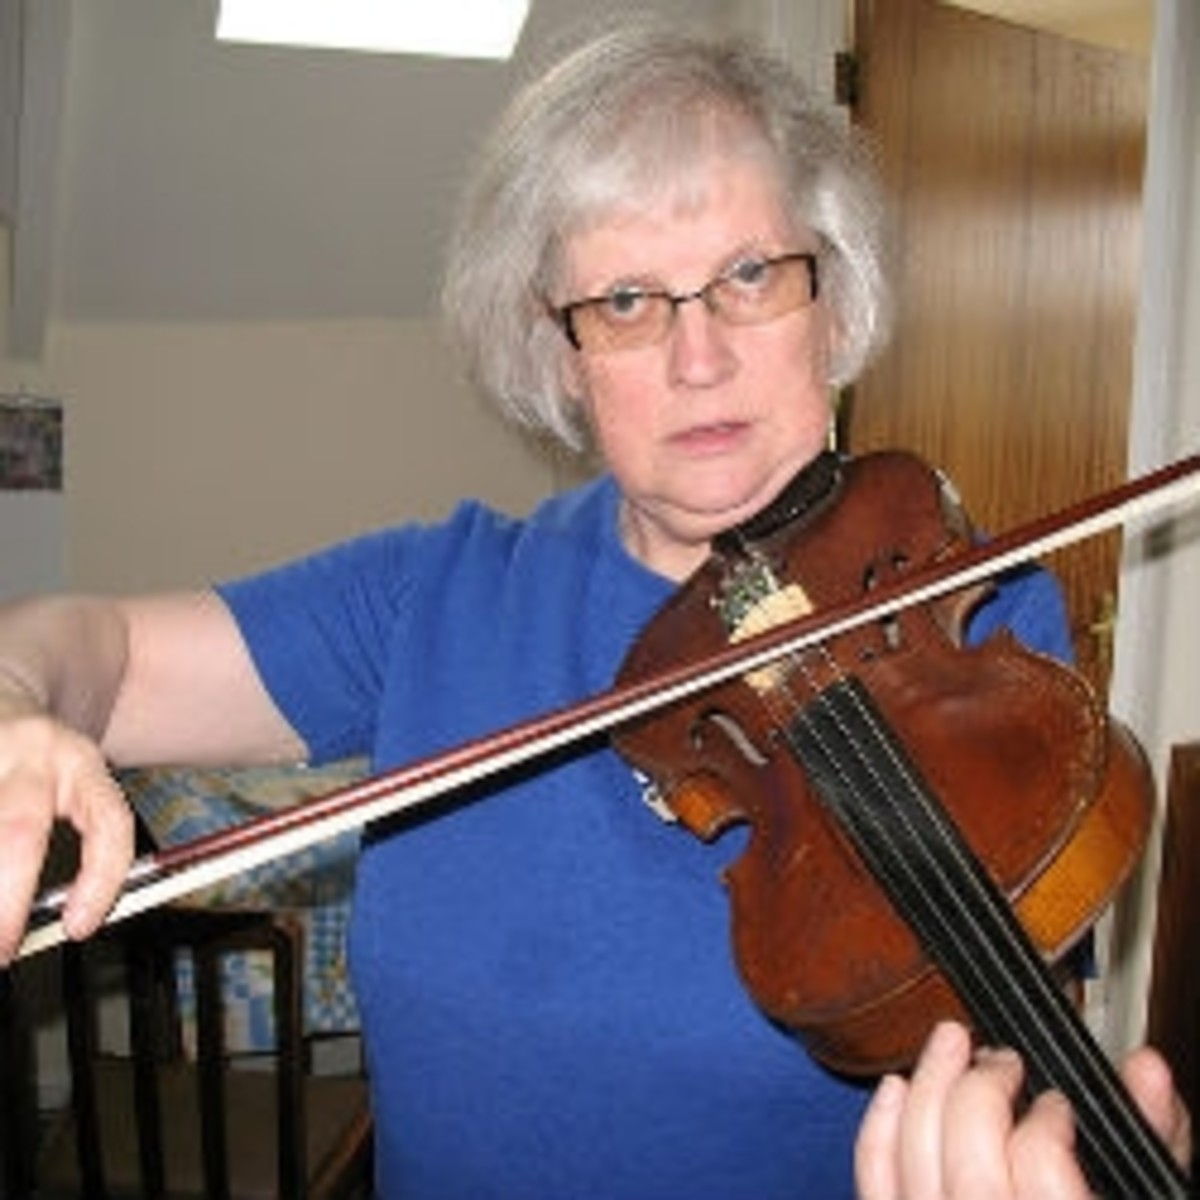 Learning the Violin as an Adult